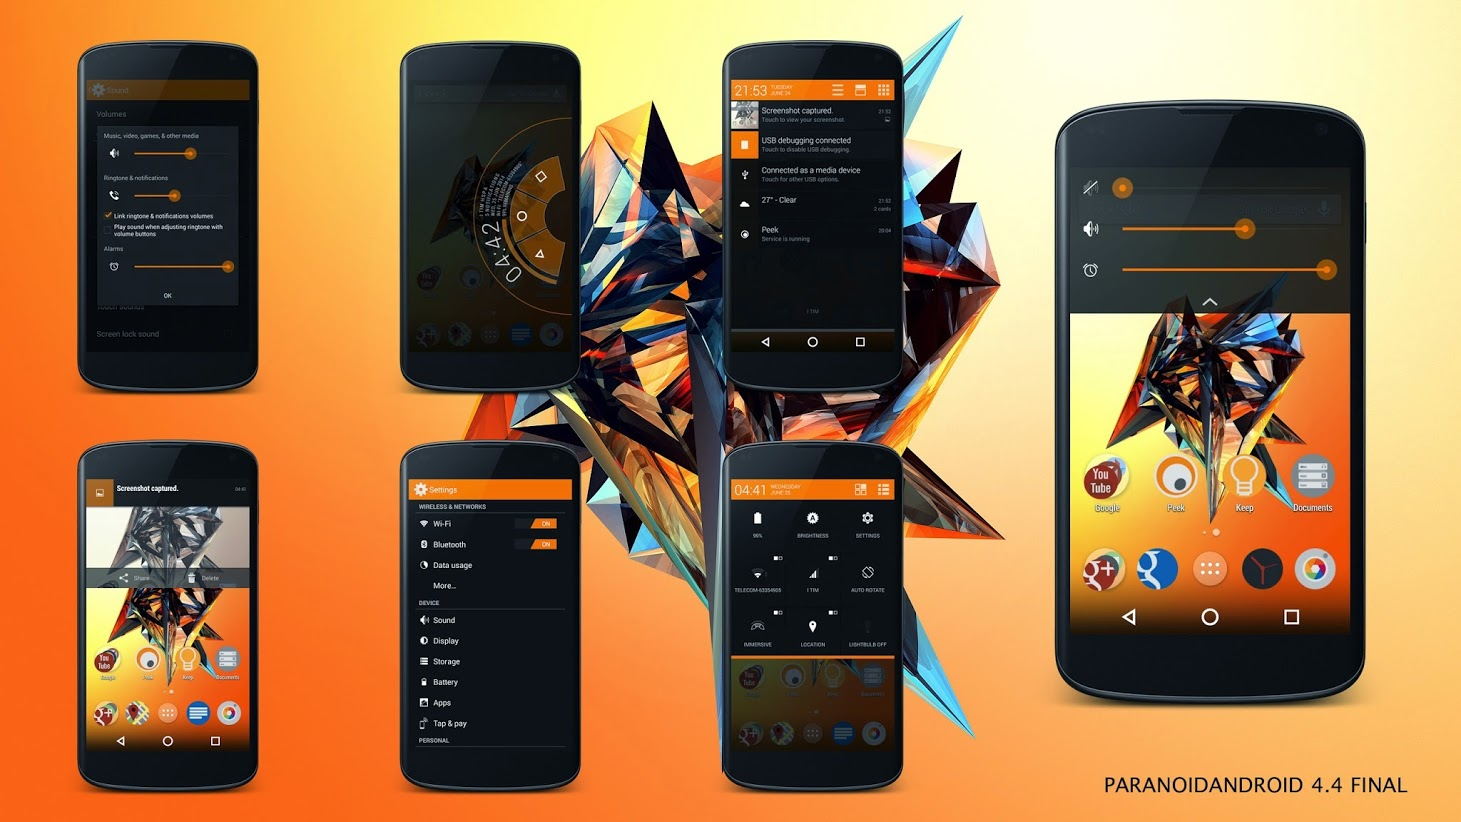 ParanoidAndroid 4.42 Final ROM Featuring Android 4.4.4 Arrives for Galaxy S2 [How to Install]